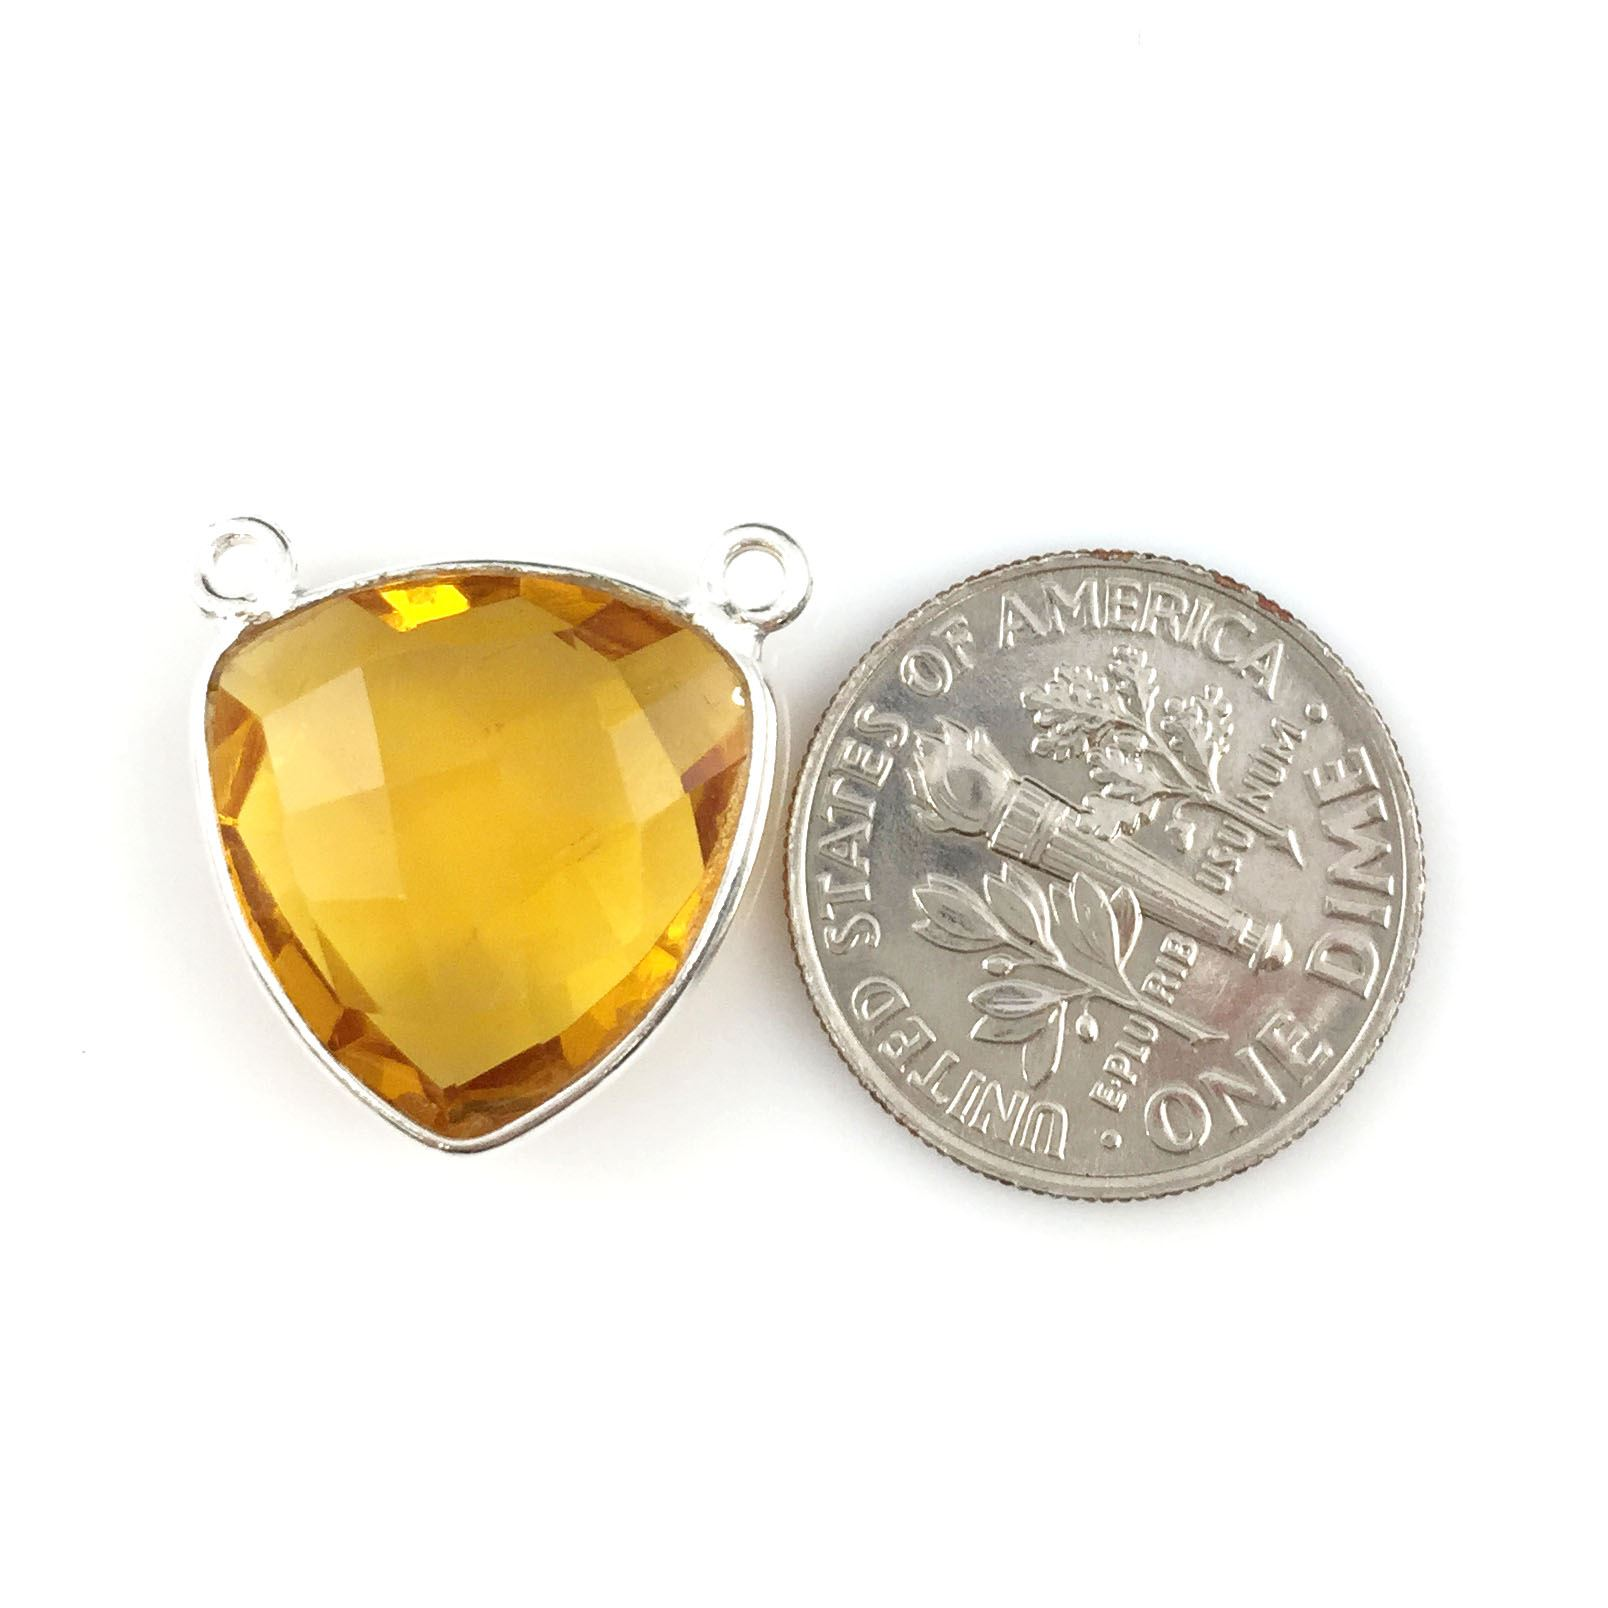 Bezel Gemstone Connector Pendant - Citrine Quartz - Sterling Silver - Small Trillion Shaped Faceted - 15mm - 1 piece